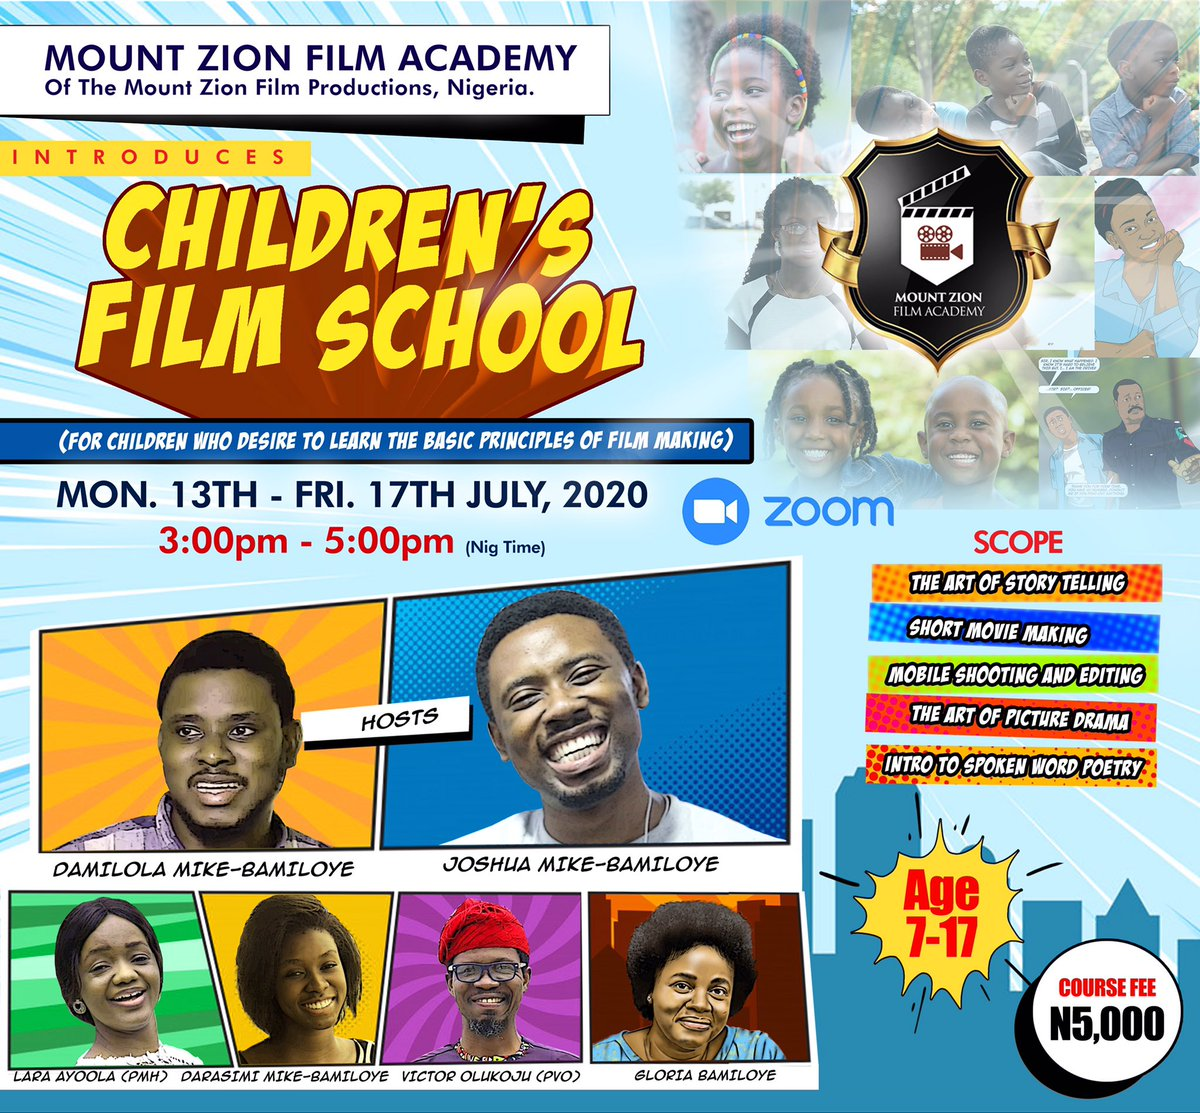 Click this link to register for the Children's Film School starting Monday next week to Friday! https://t.co/9aggqVN1bT https://t.co/omm1IivjRP